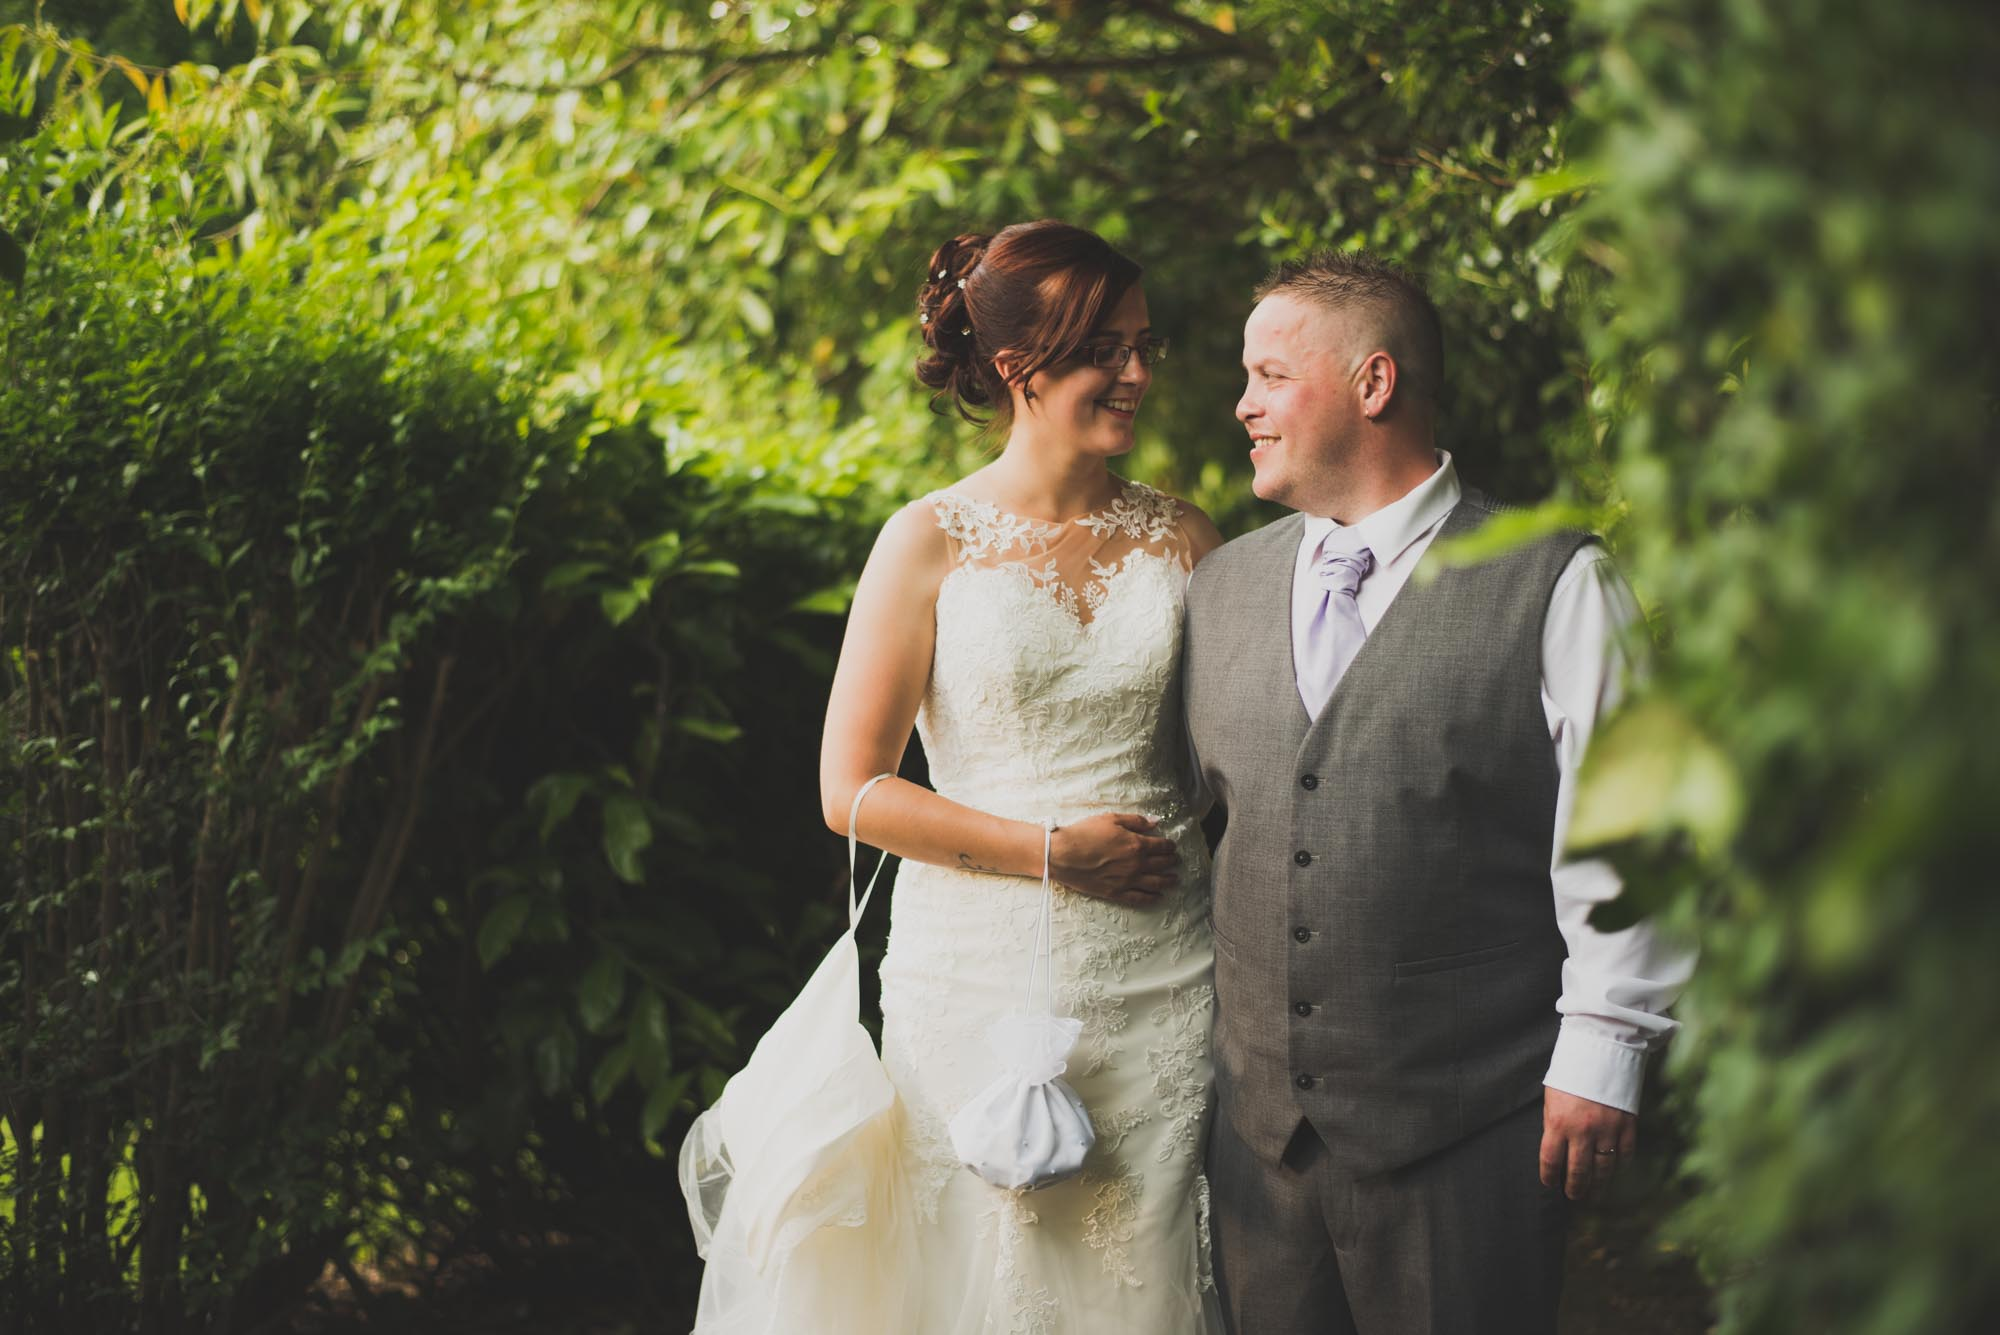 Louise & Matt's Kenwood Hall Wedding